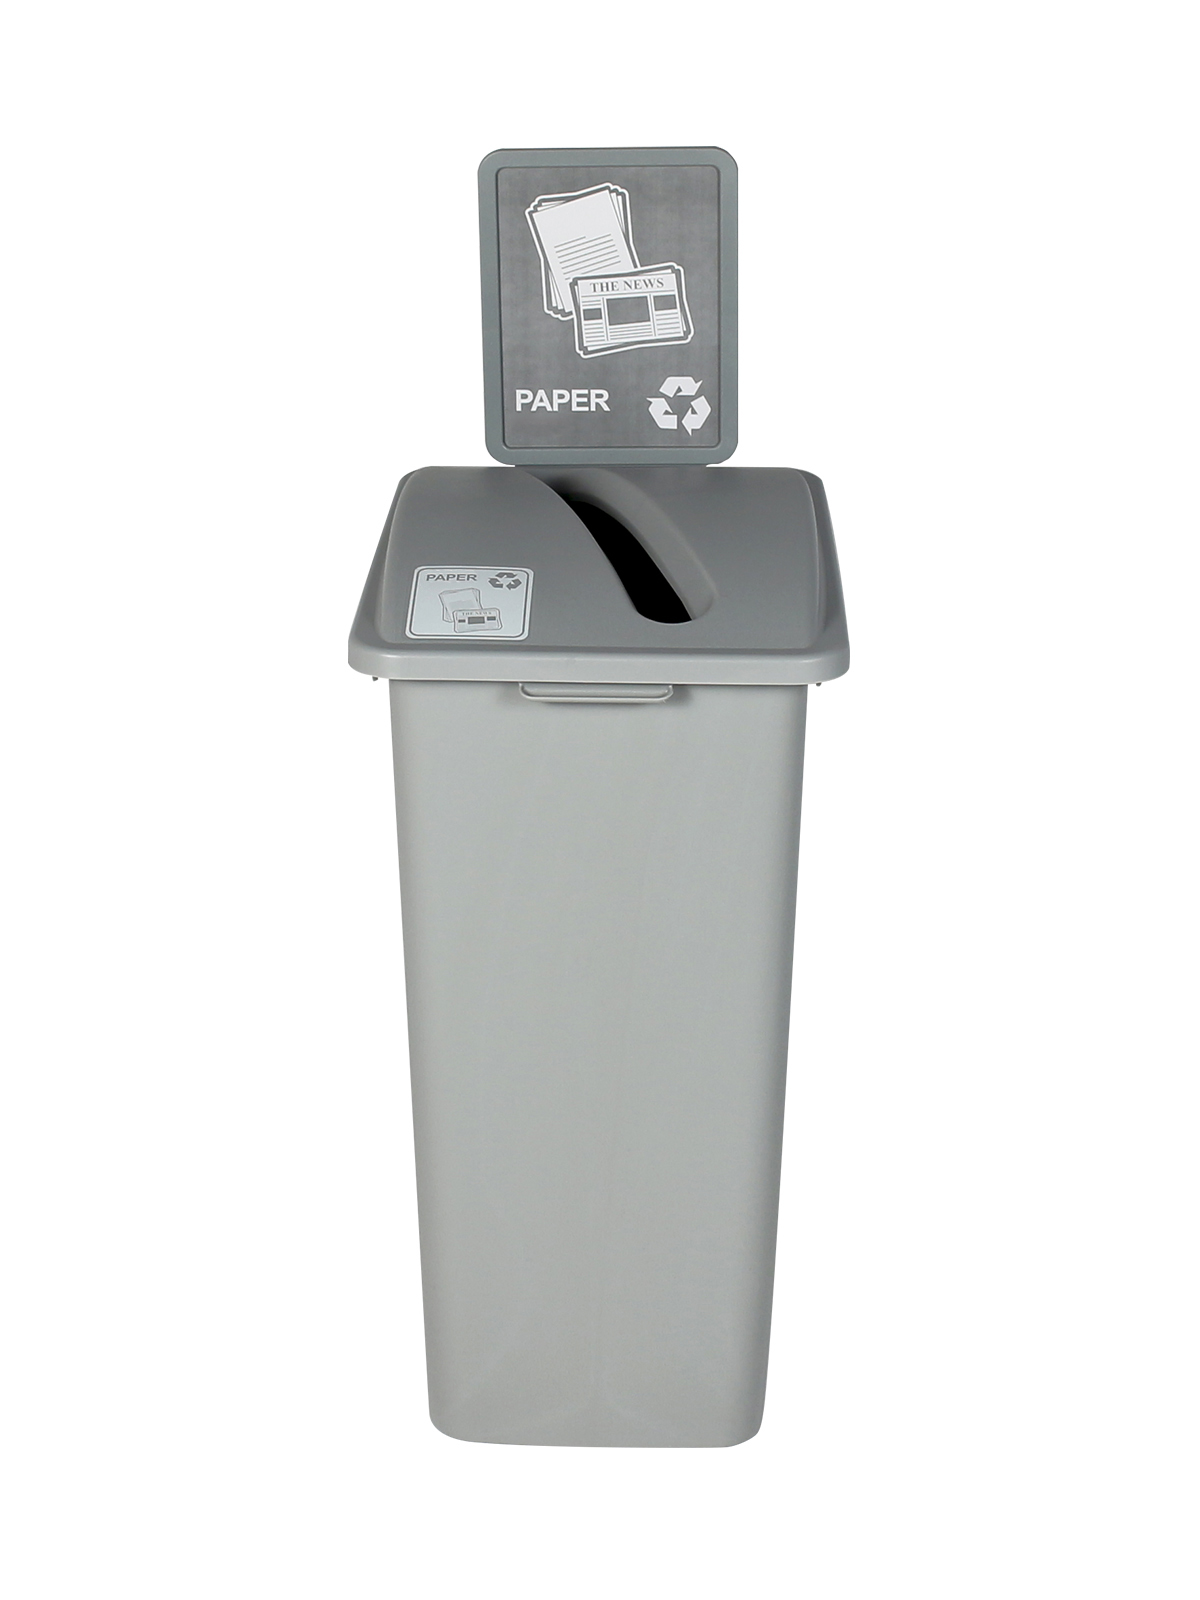 WASTE WATCHER XL - Single - Paper - Slot - Grey